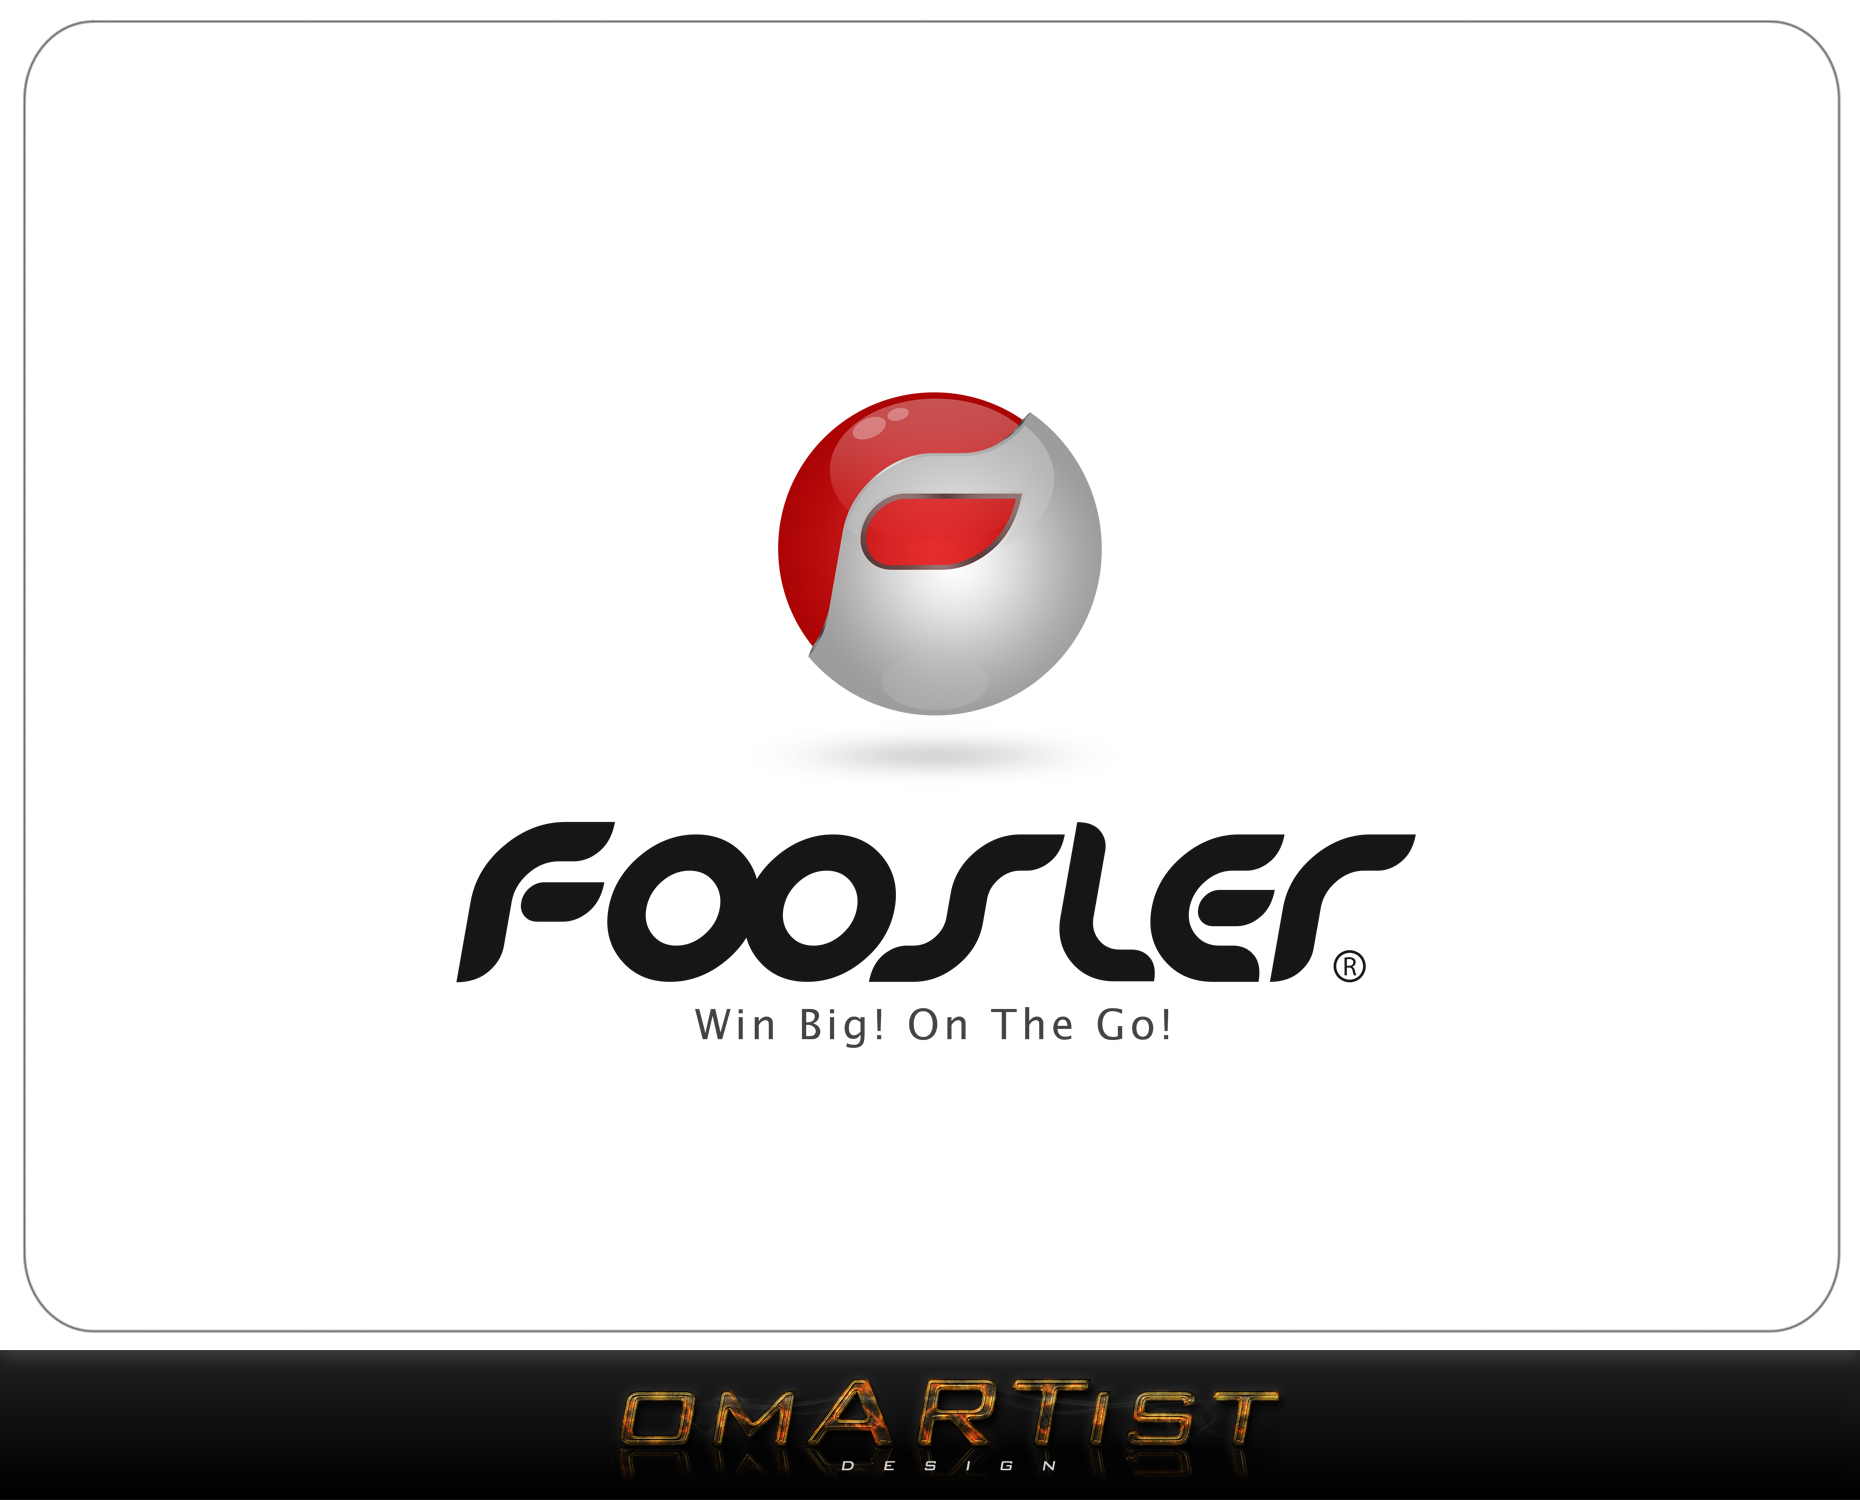 Logo Design by omARTist - Entry No. 44 in the Logo Design Contest Foosler Logo Design.